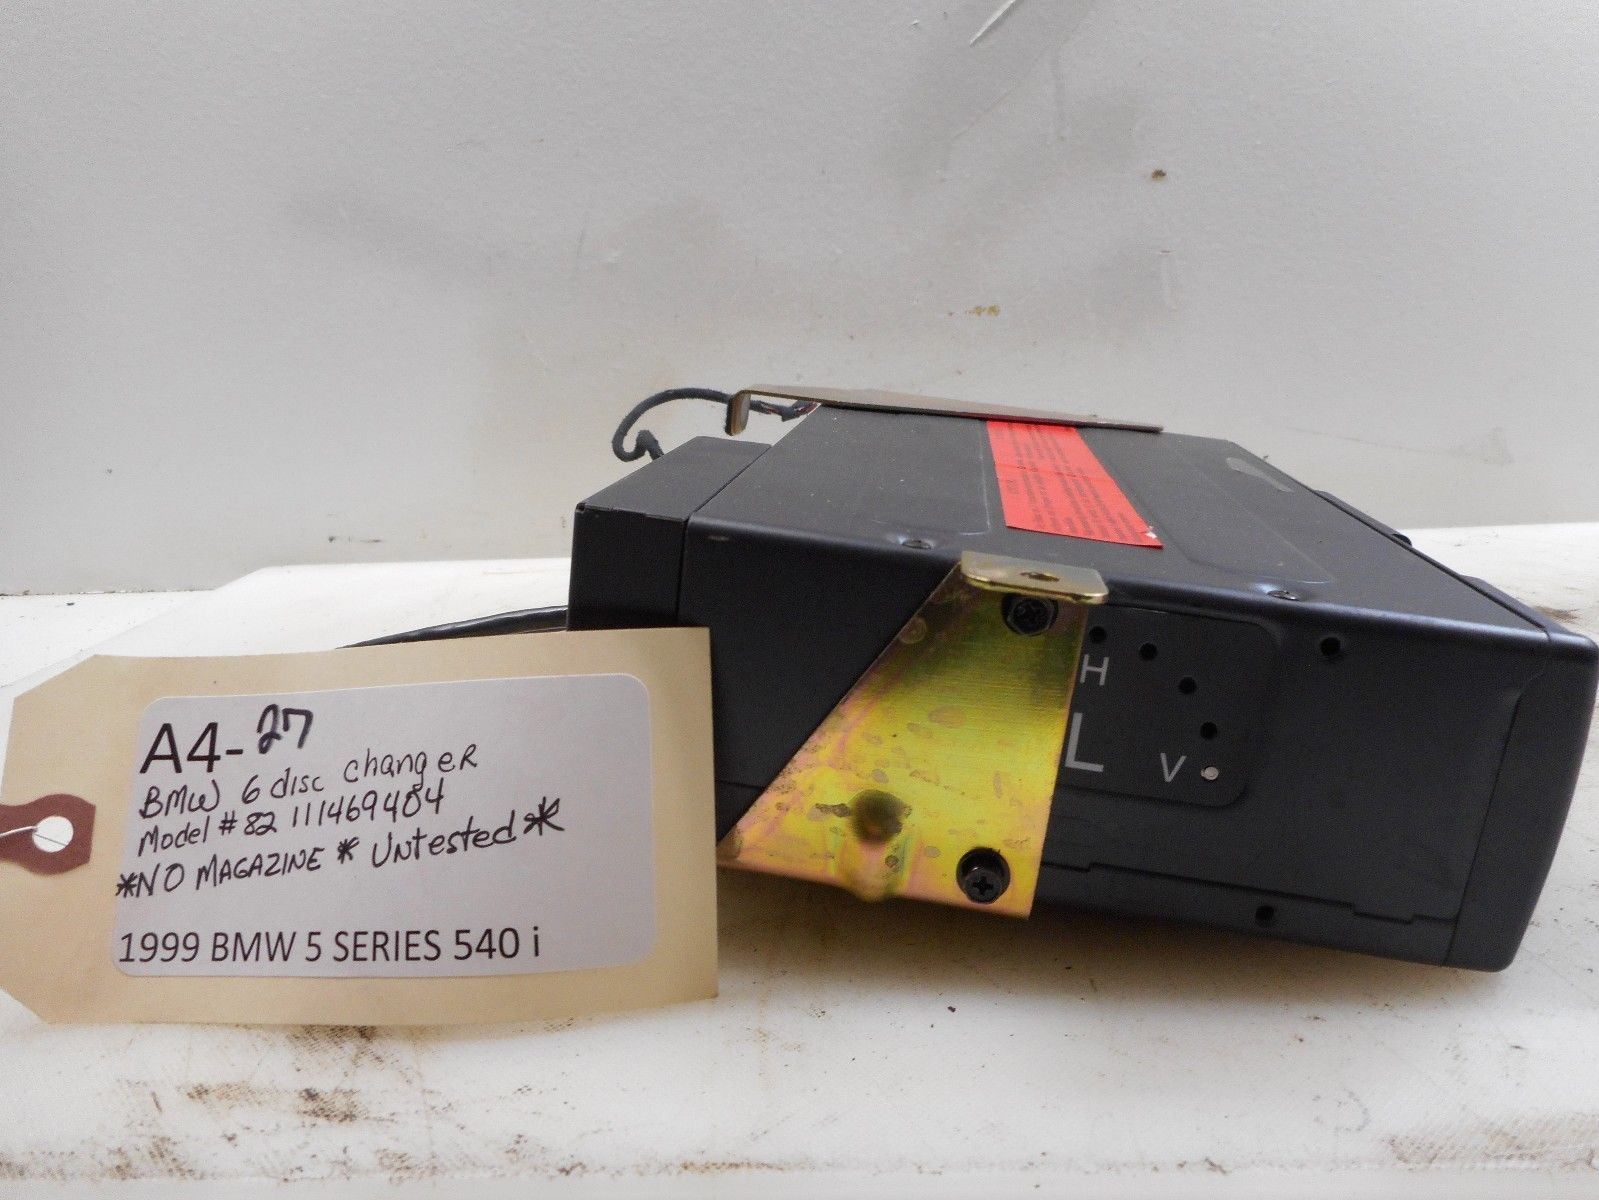 1999 BMW 540I SERIES 5 6 DISC CHANGER MODEL #82 111469404 NO MAGAZINE Does not apply A4-27